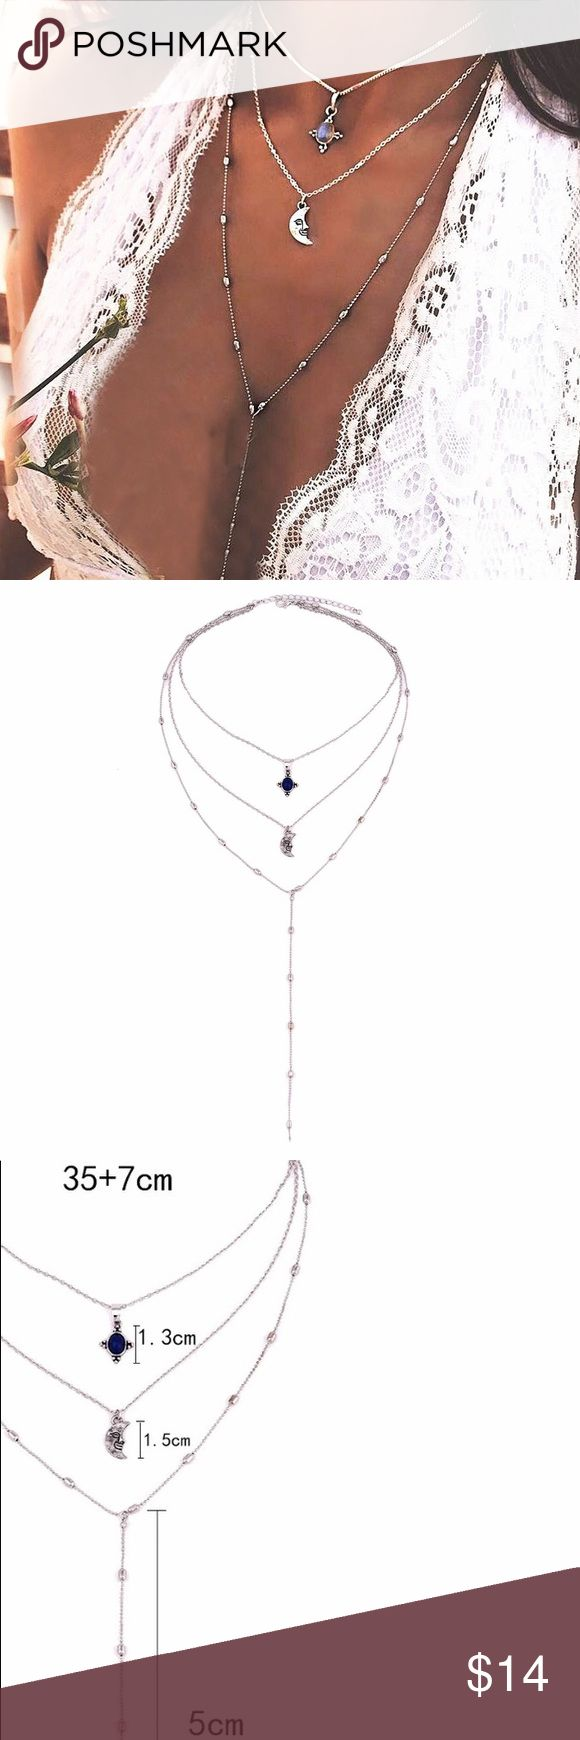 """NEW🔥 Trendy """"Sparkling Moon"""" Boho Choker Adjustable. Everything comes connected together. Save more when you bundle just """"add to bundle"""" and I'll send u a private offer. COLOR: silver    Brand new ✅ 🌸Boutique Item Not accepting OFFERS on INDIVIDUAL ITEMS ❌ No trades ❌ No drama zone❌ No holds❌   💥🔅Prices are FIRM🔅💥    If u have any questions plz ask before purchase is made Jewelry Necklaces"""